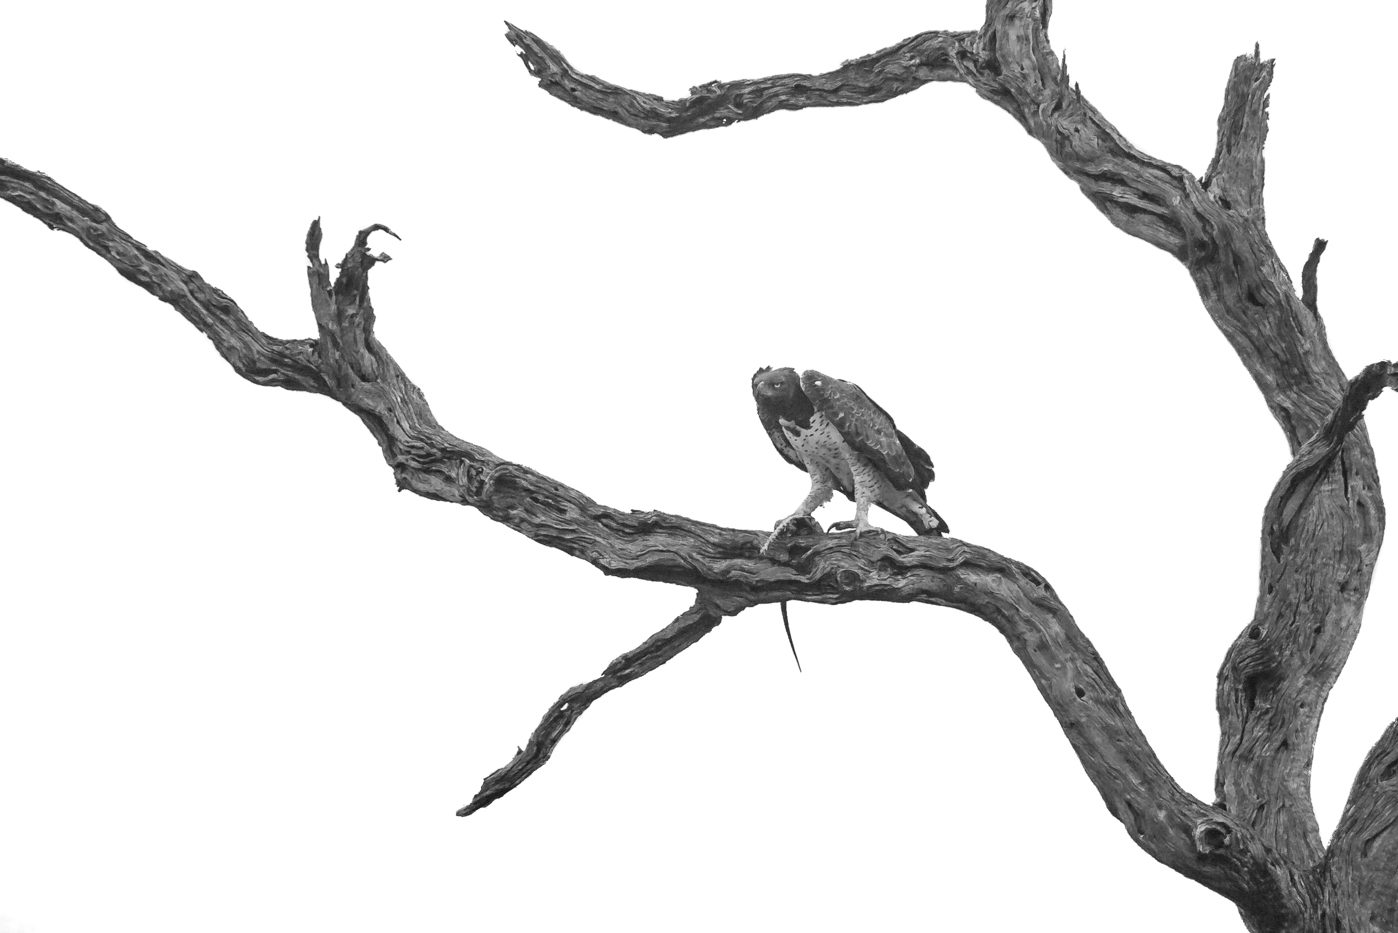 A Martial eagle sits in a leadwood tree after killing a monitor lizard in black and white by Peter Thorpe, 2018